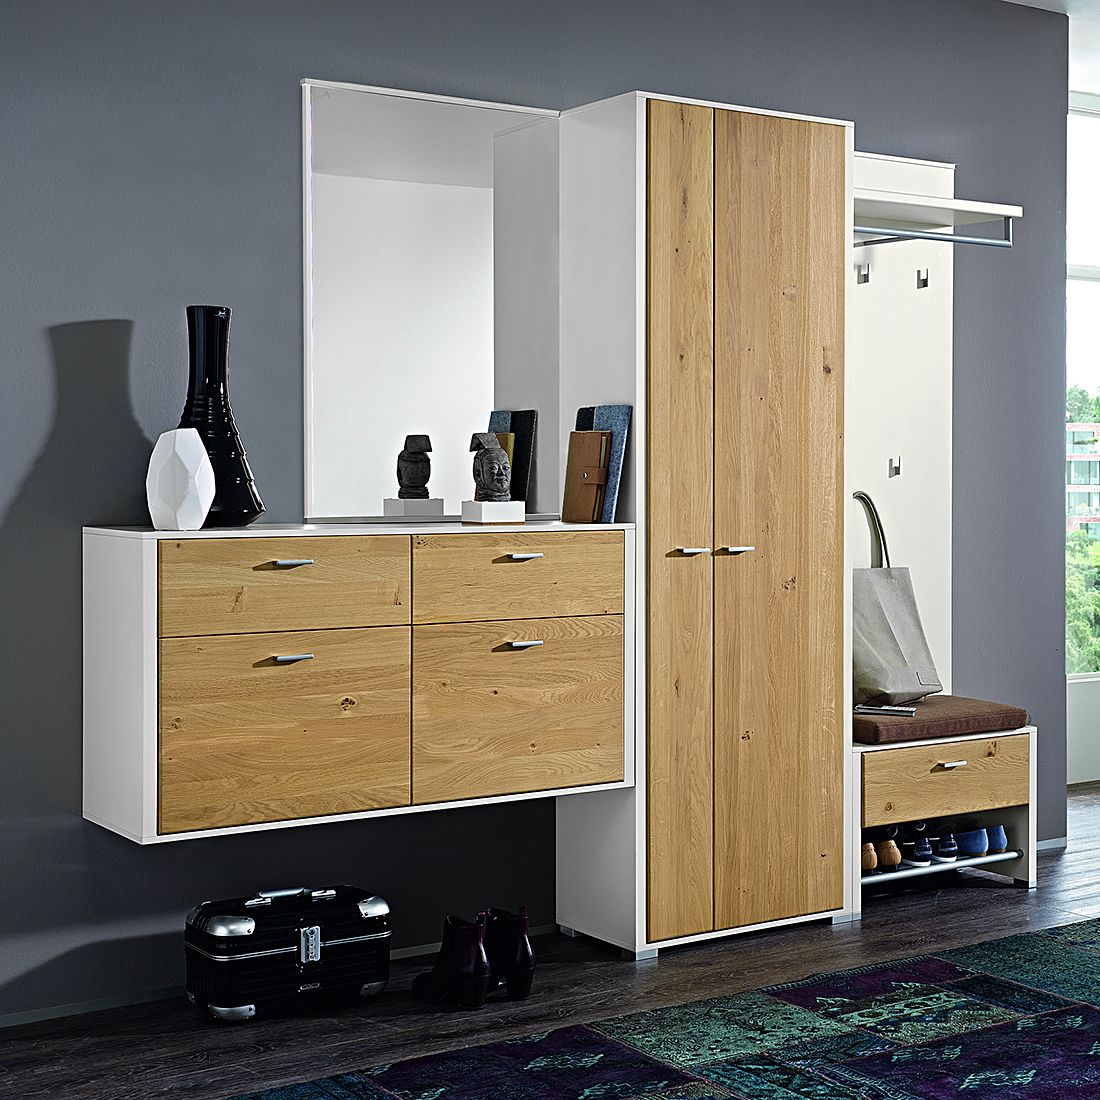 garderobenset canoa 5 teilig wei wildeiche bianco teilmassiv ohne beleuchtung. Black Bedroom Furniture Sets. Home Design Ideas